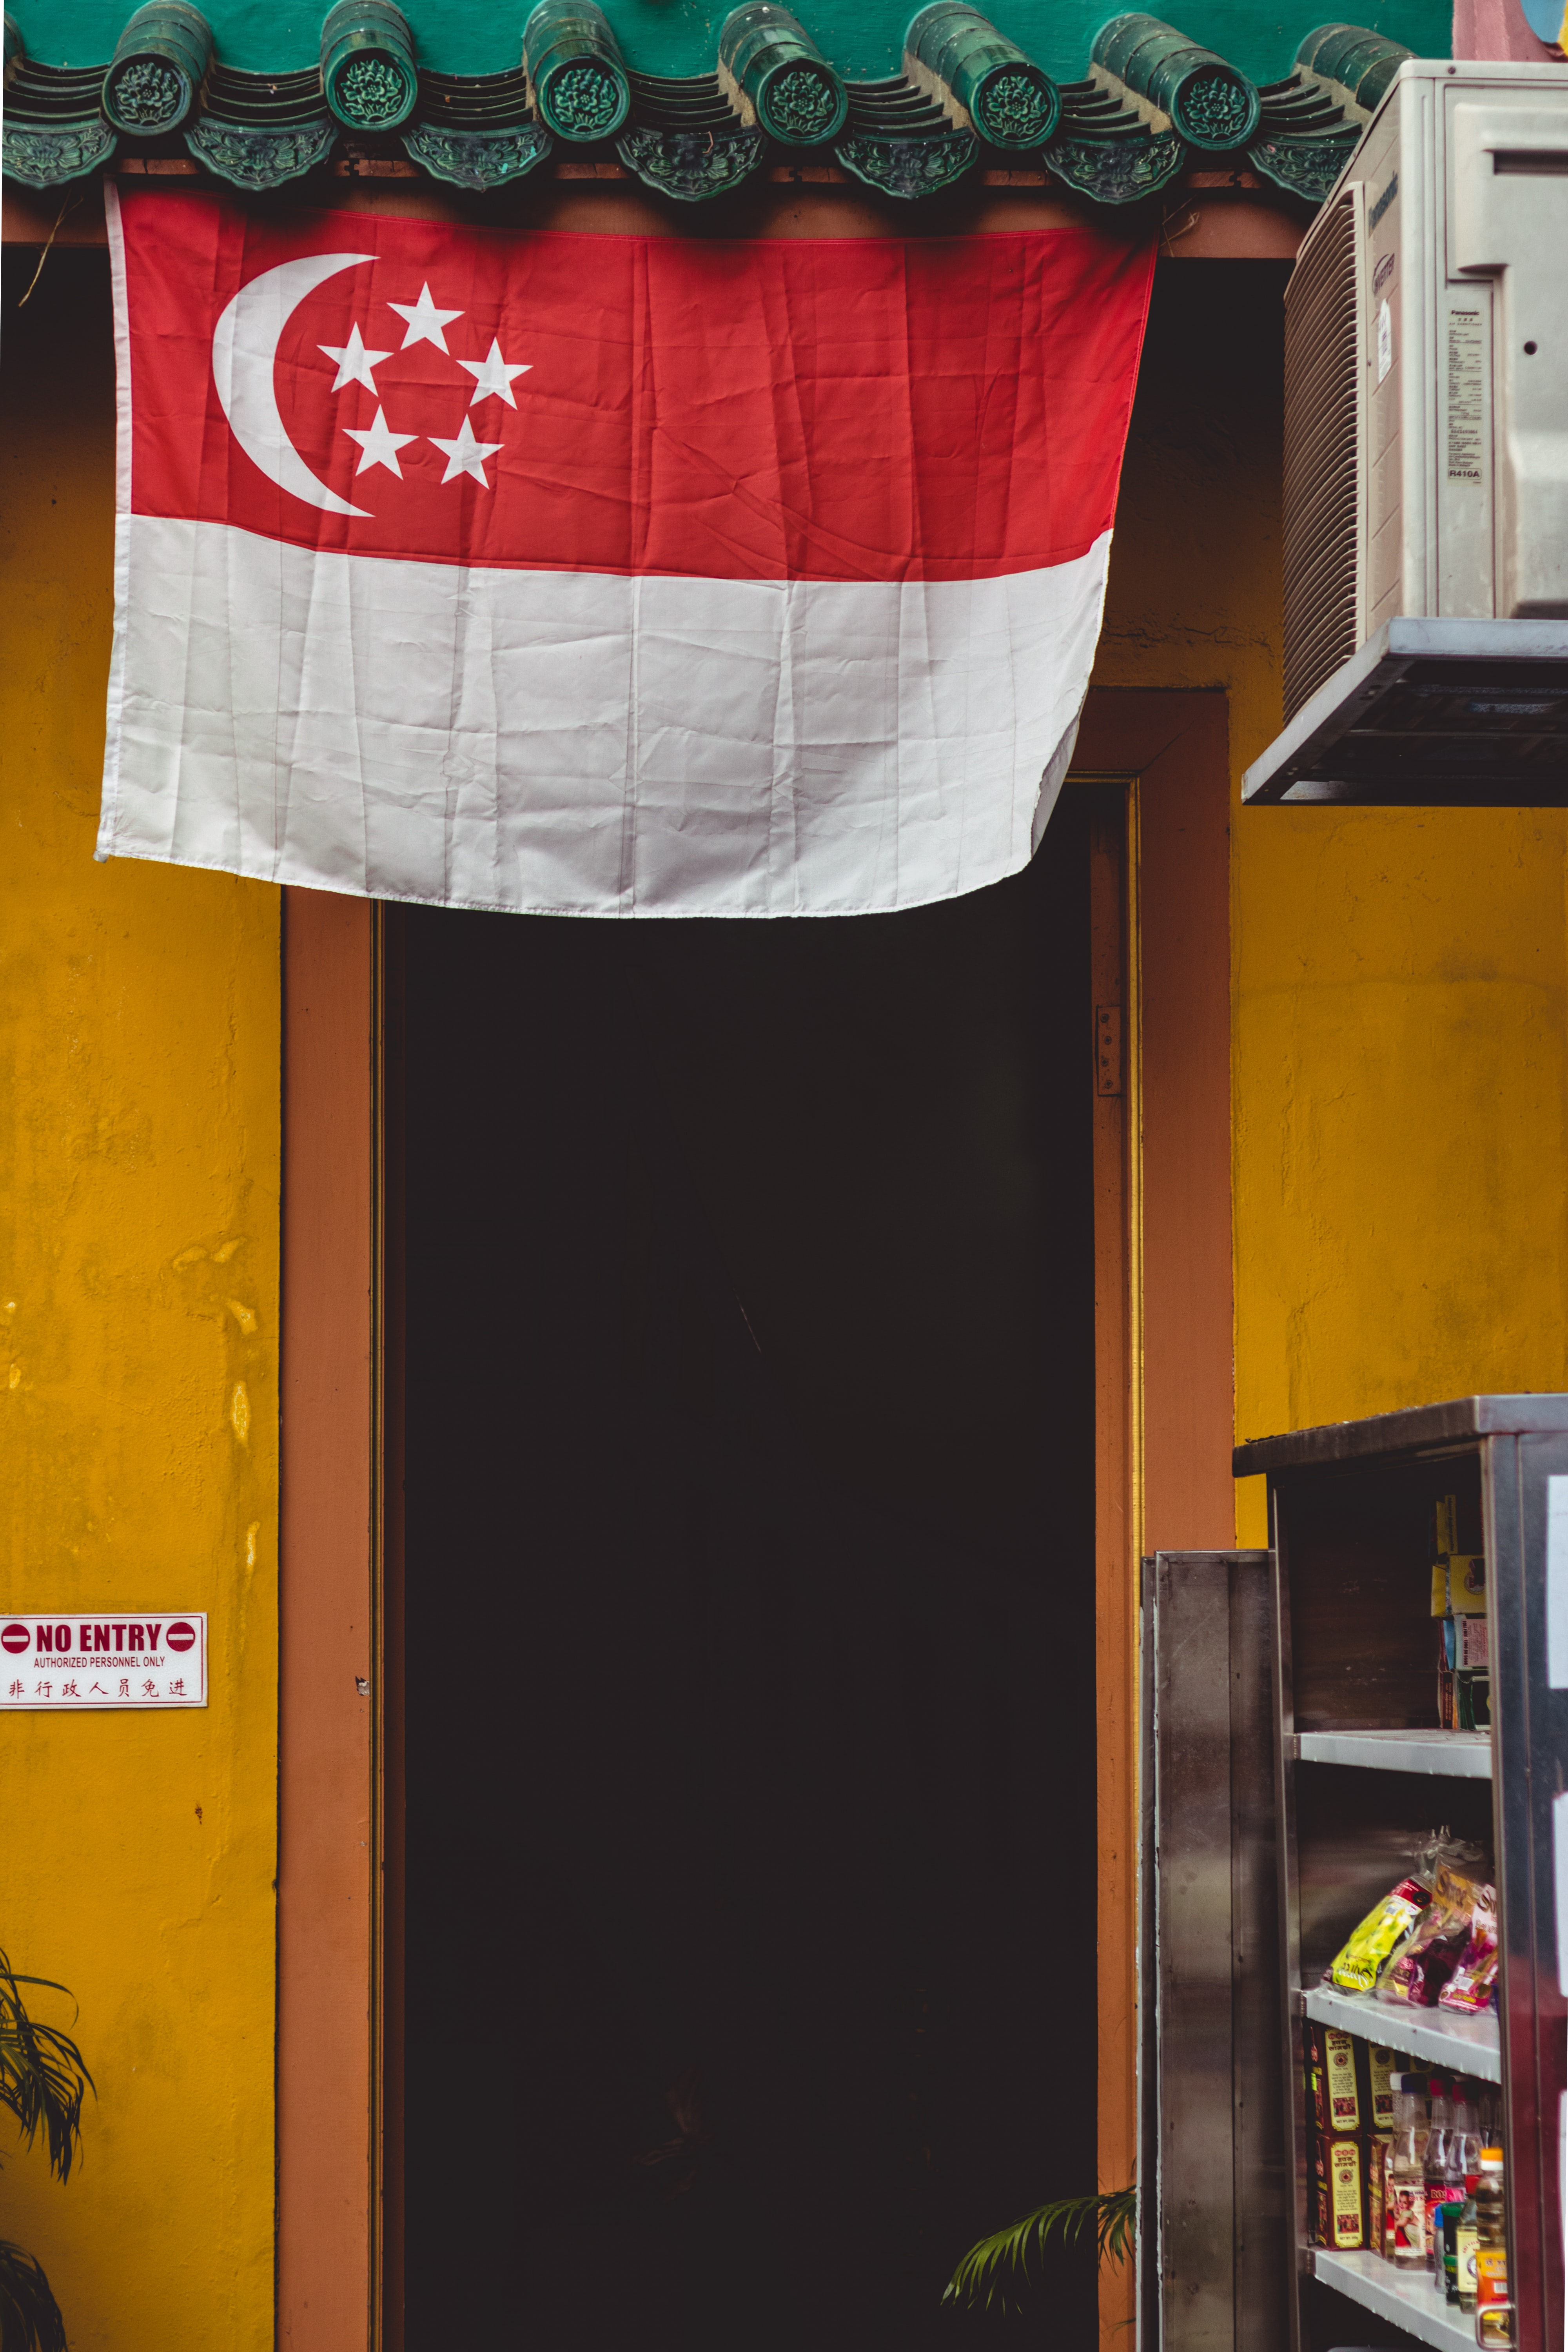 Singapore flag hung over a traditional building.